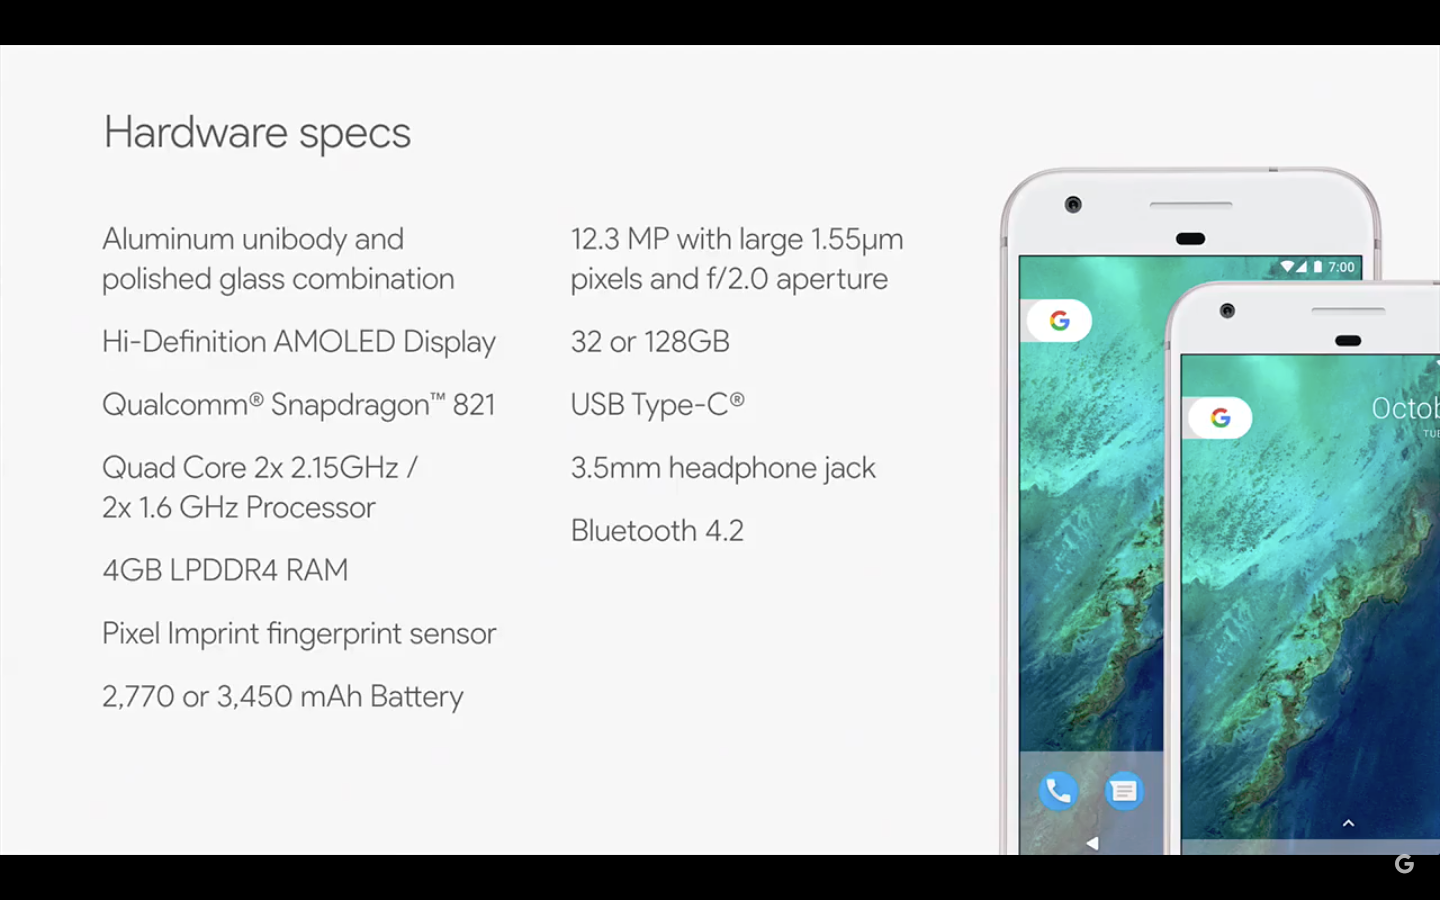 Google Launches Two Pixel Phones The Showcase For Google